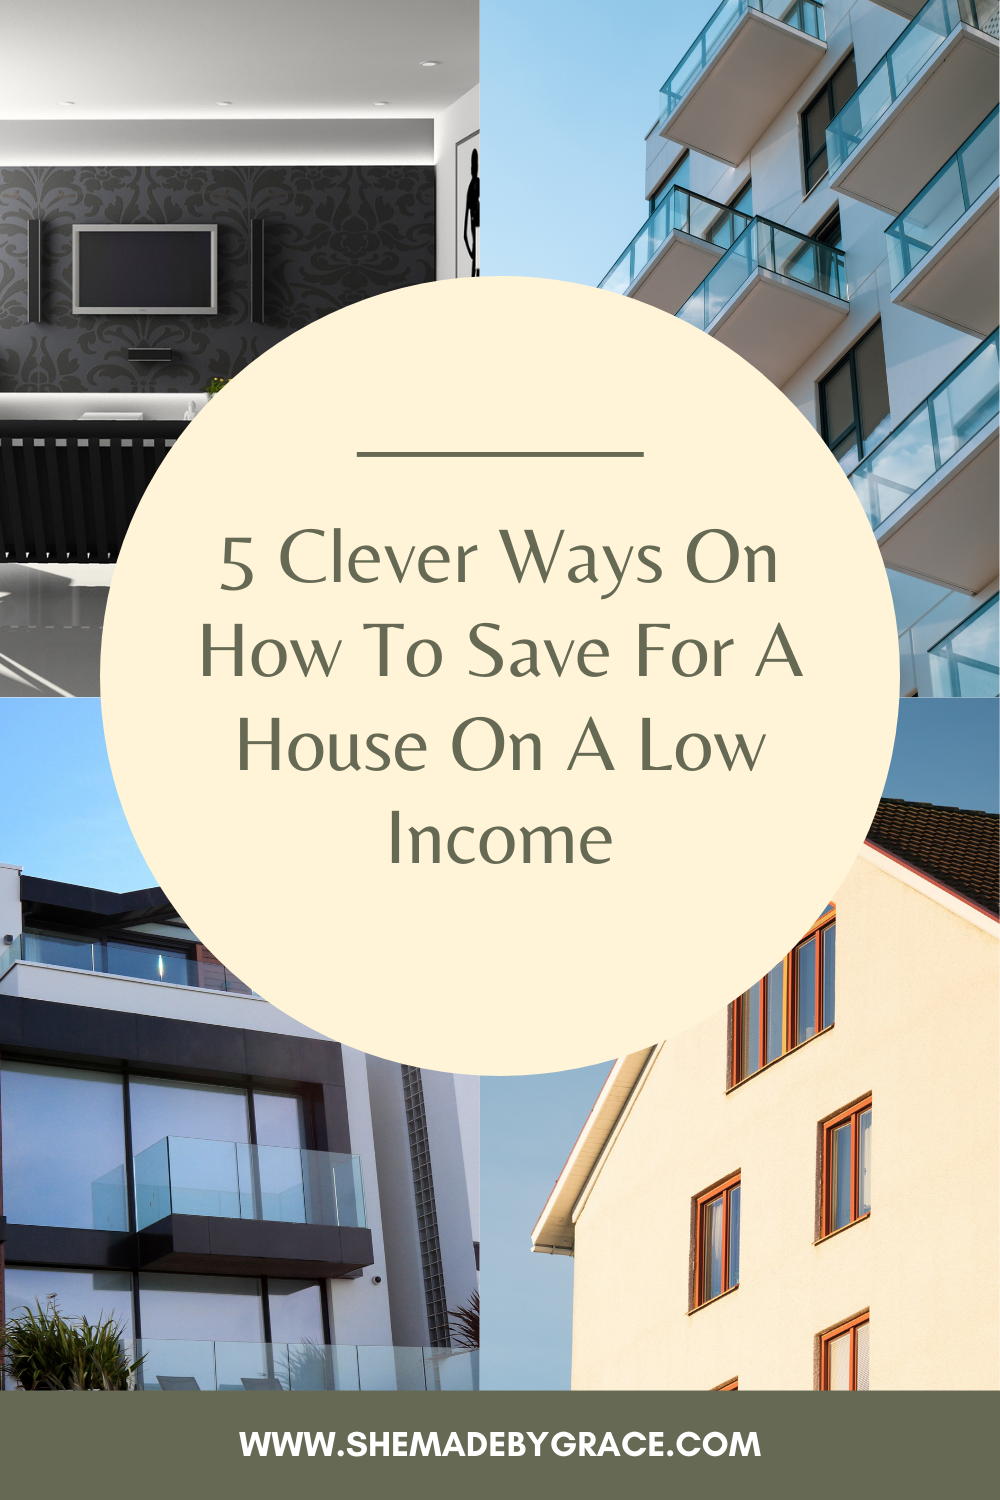 22 Clever Ways On How To Save For A House On A Low Income - She